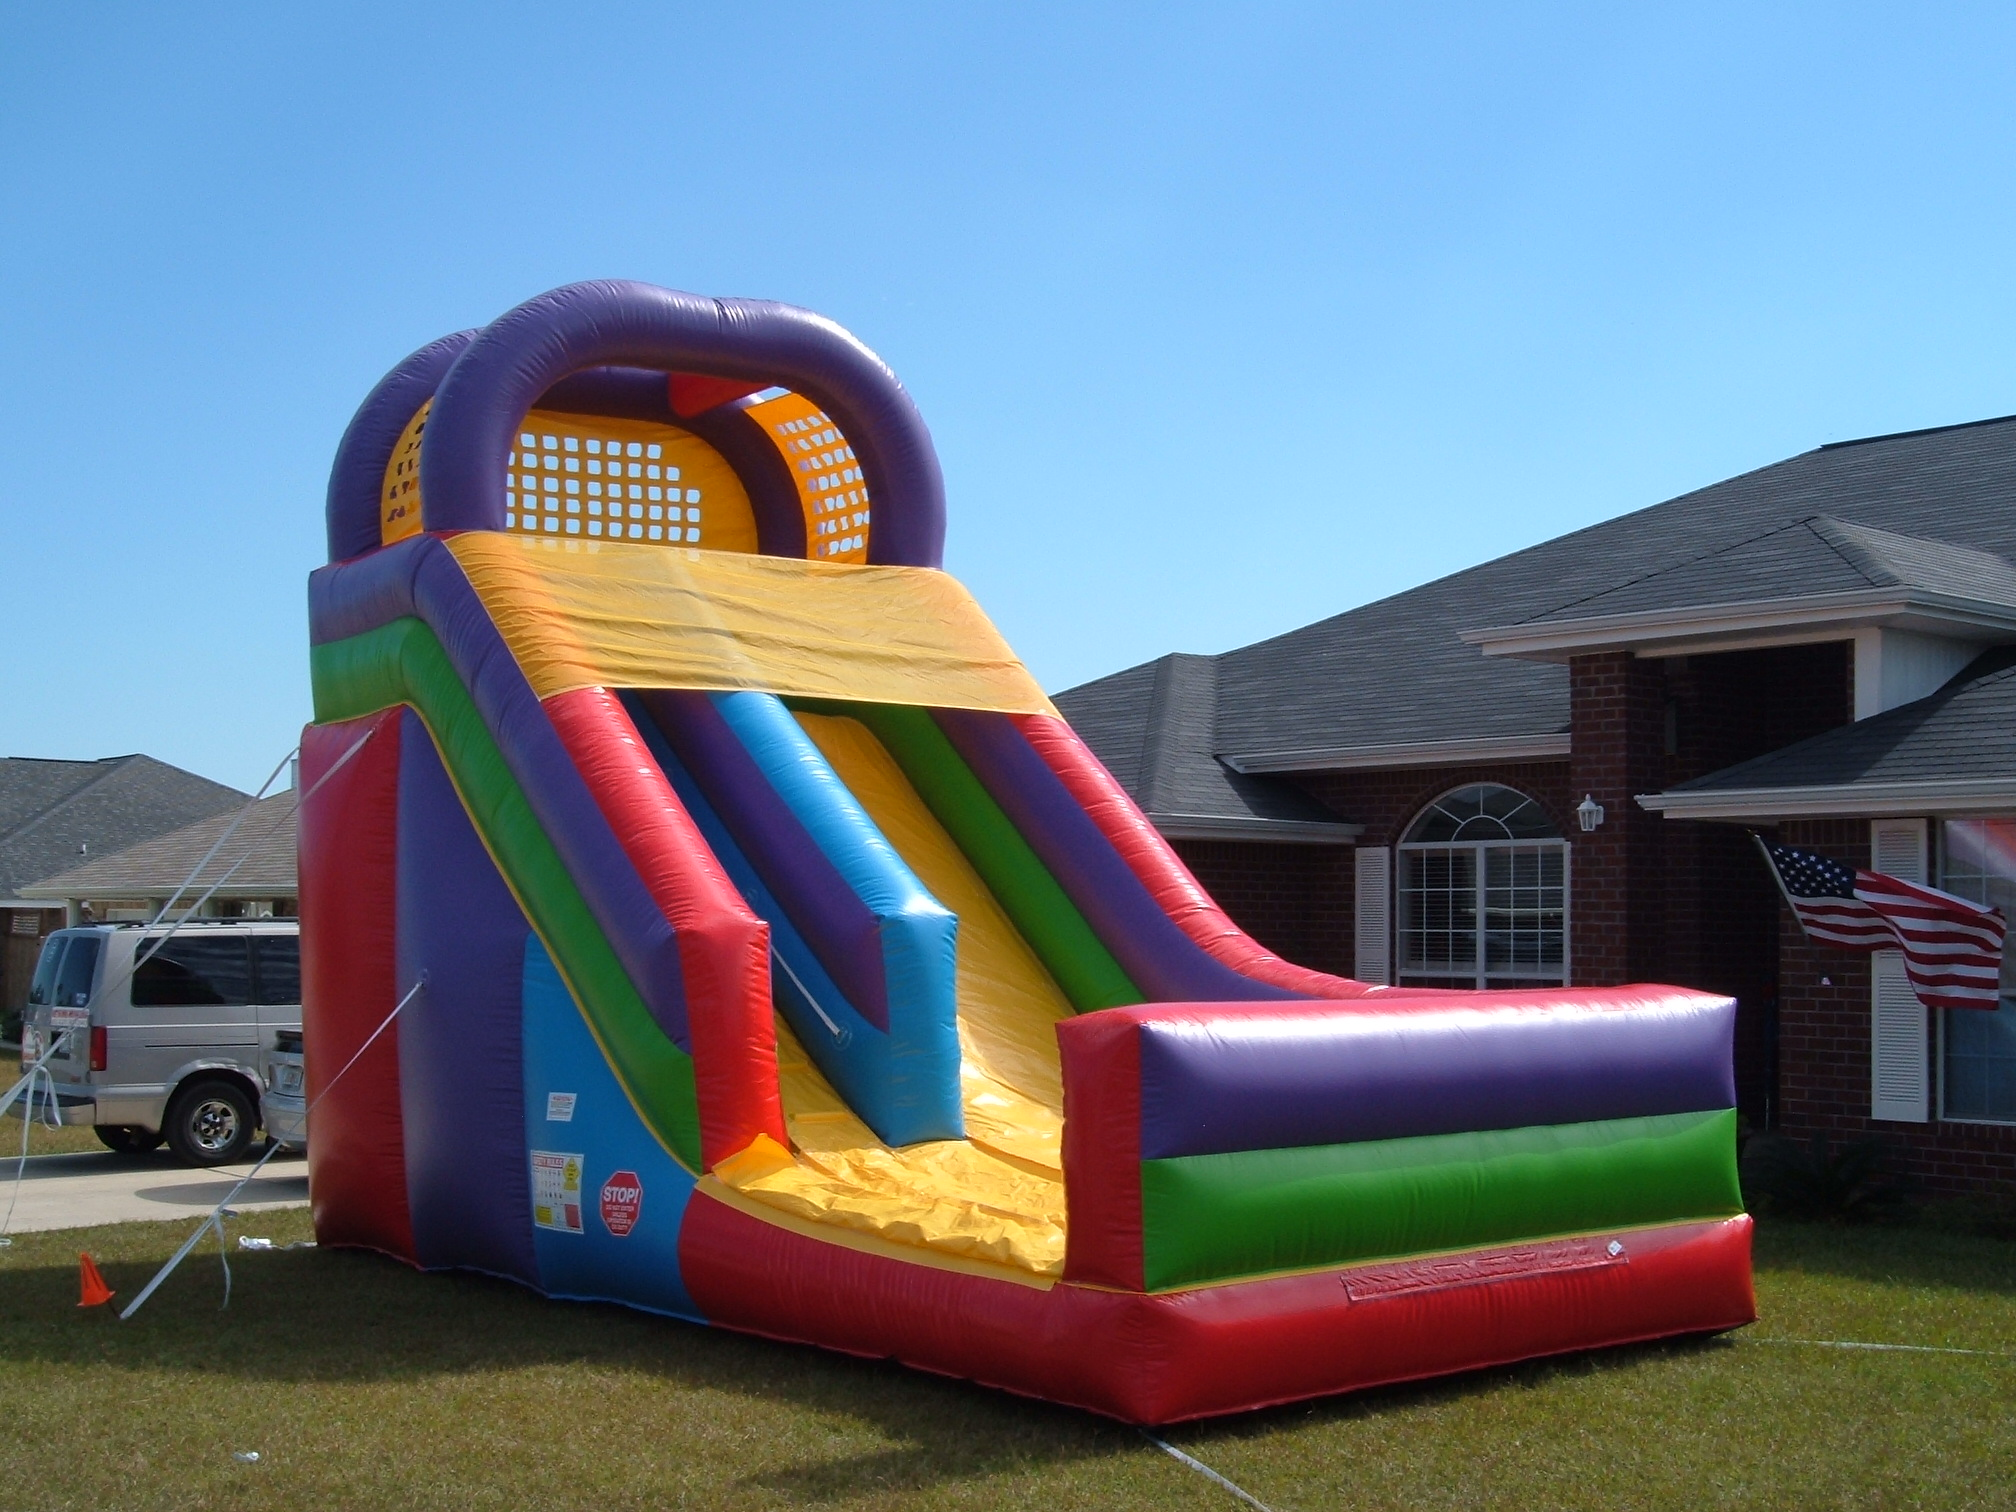 Party Time Bounce Llc Crestview Florida 39 S First Choice For Inflatable Water Slide Rentals